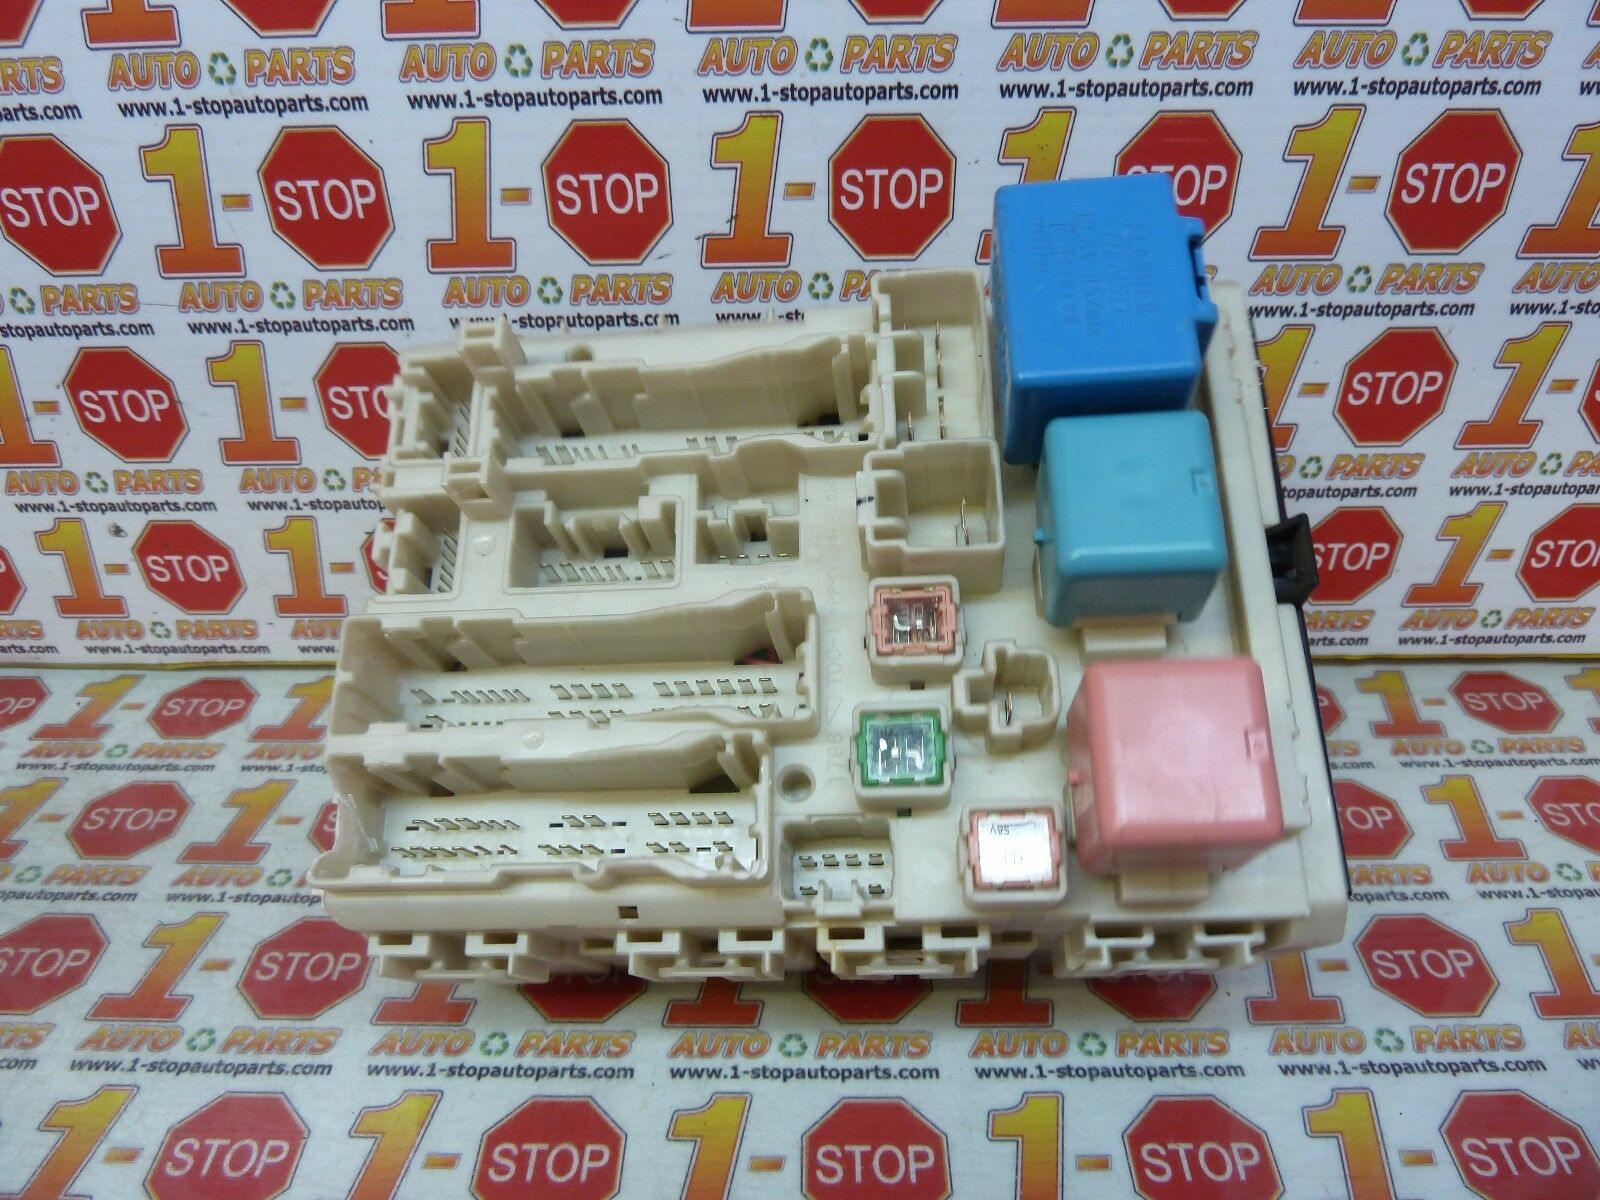 Grg623 Fusebox 2011 Toyota Corolla 18 8273002210 Ebay 2010 S Fuse Box Norton Secured Powered By Verisign